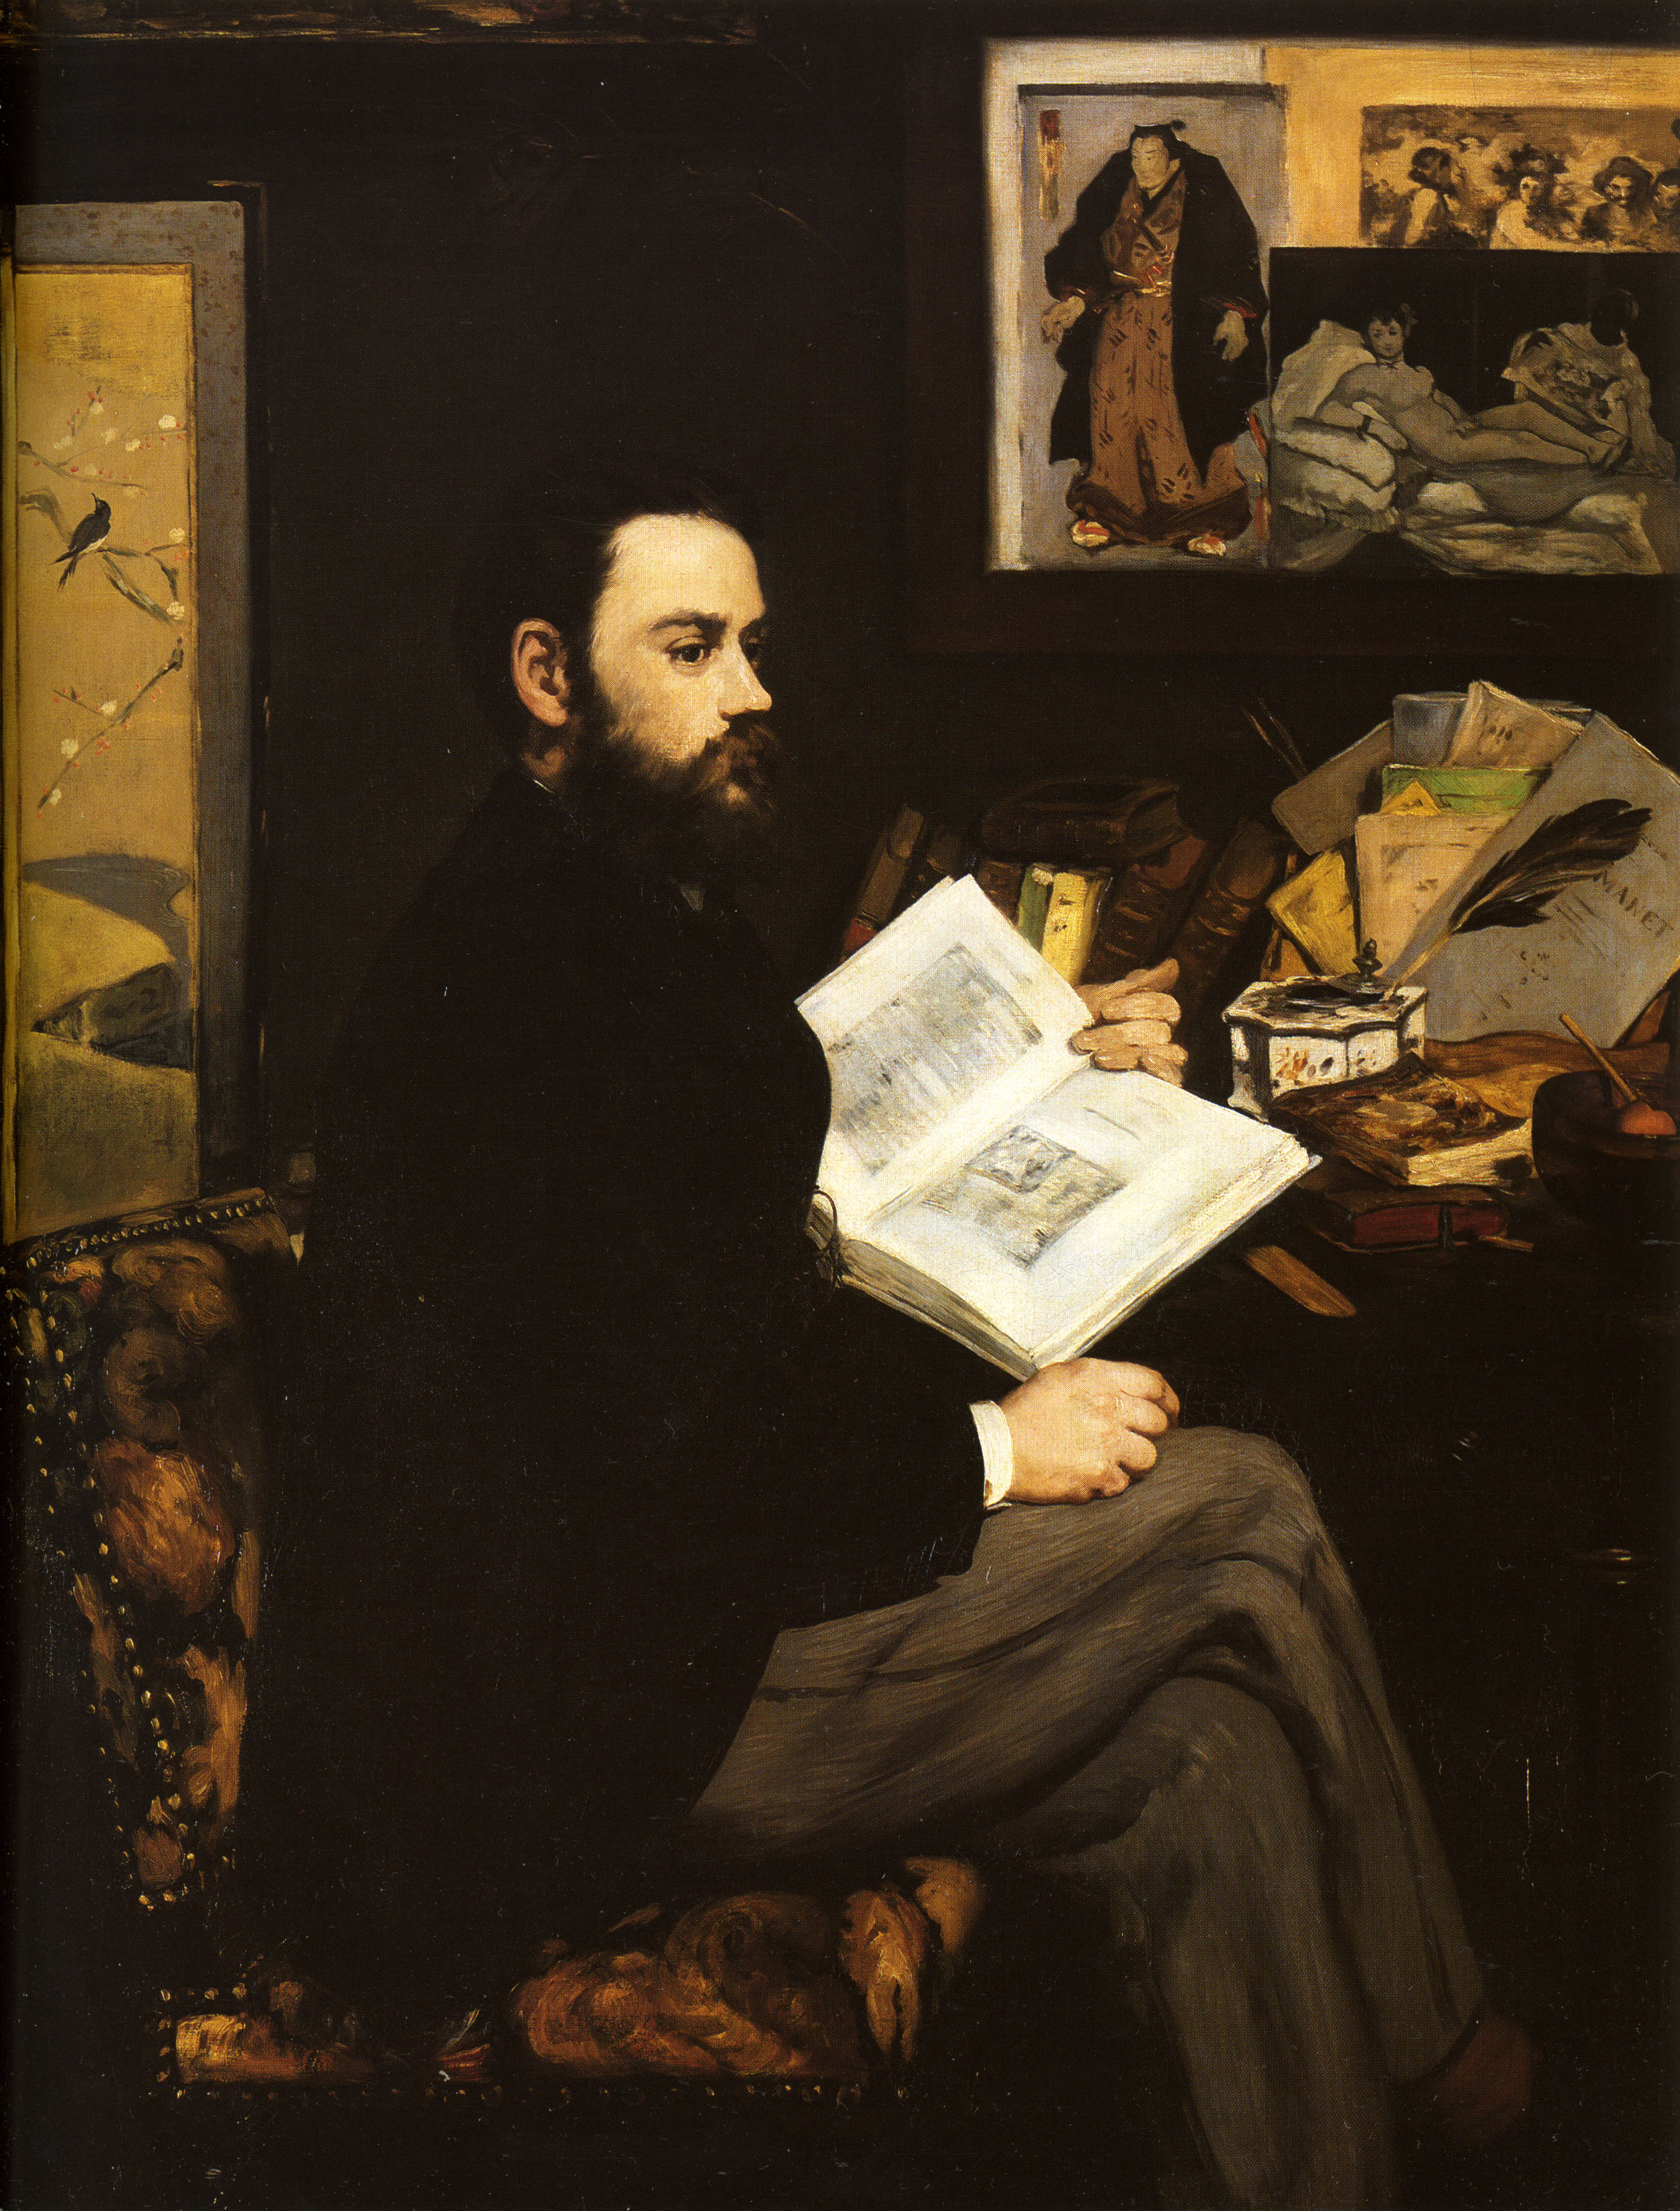 PHD RESEARCH TOPIC IN MANET